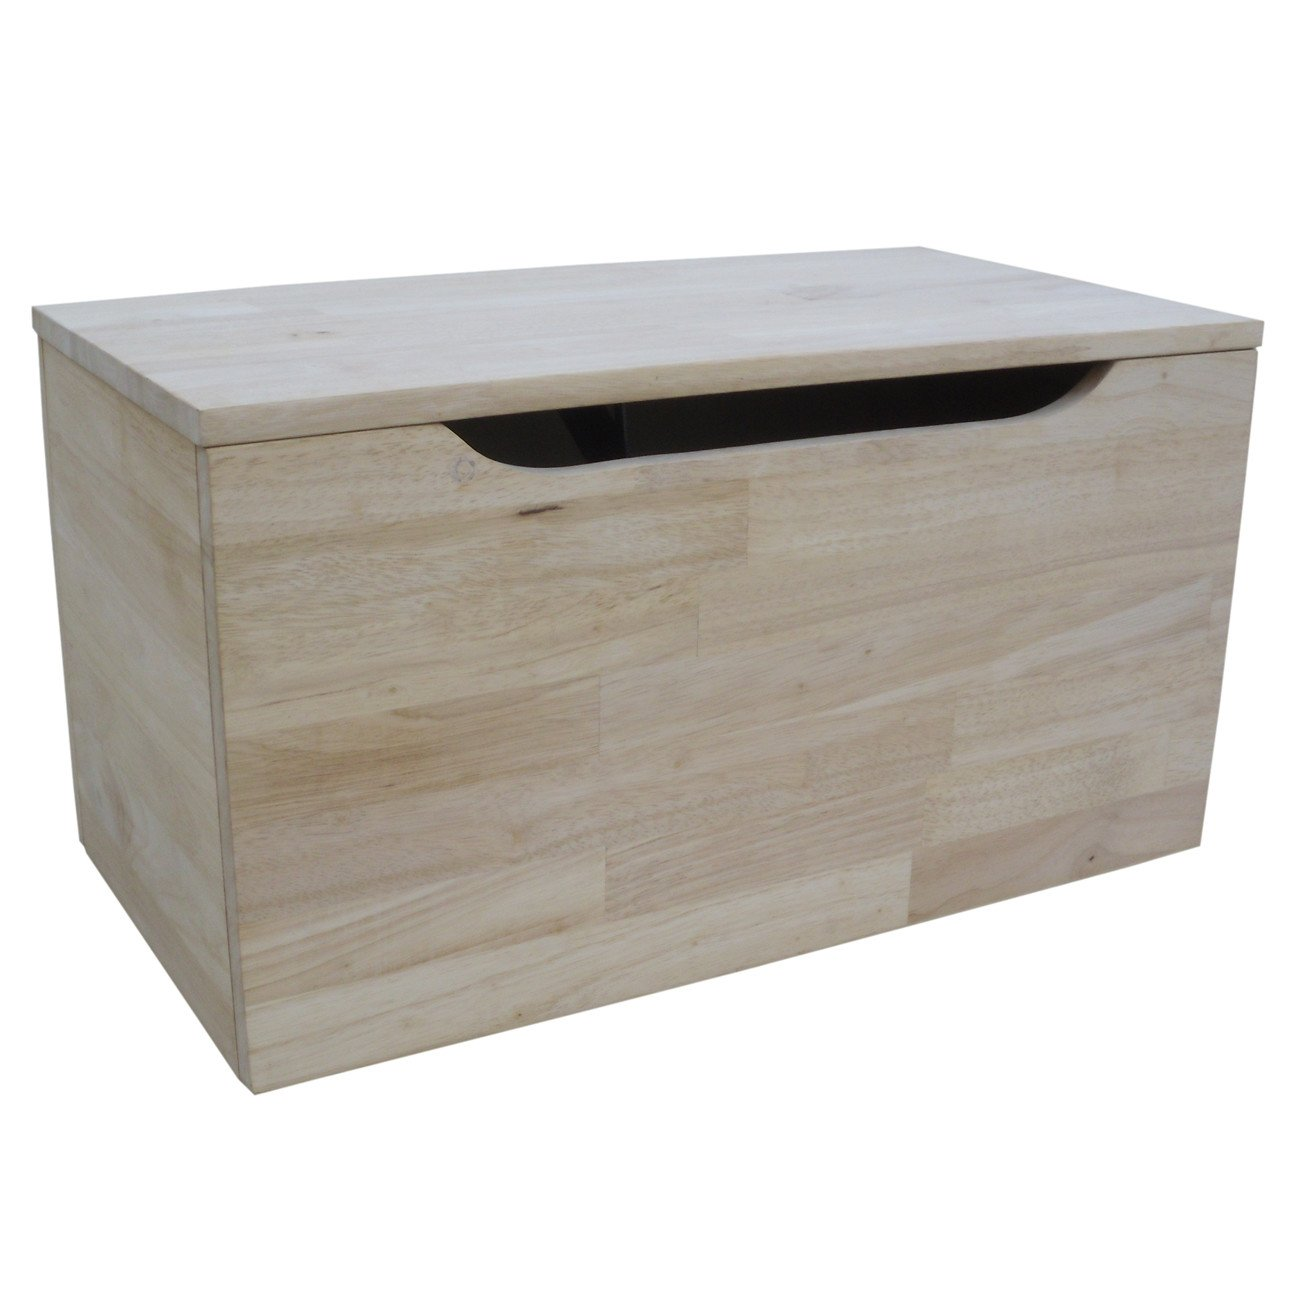 Unfinished Wood 22'' Footlocker Storage Trunk